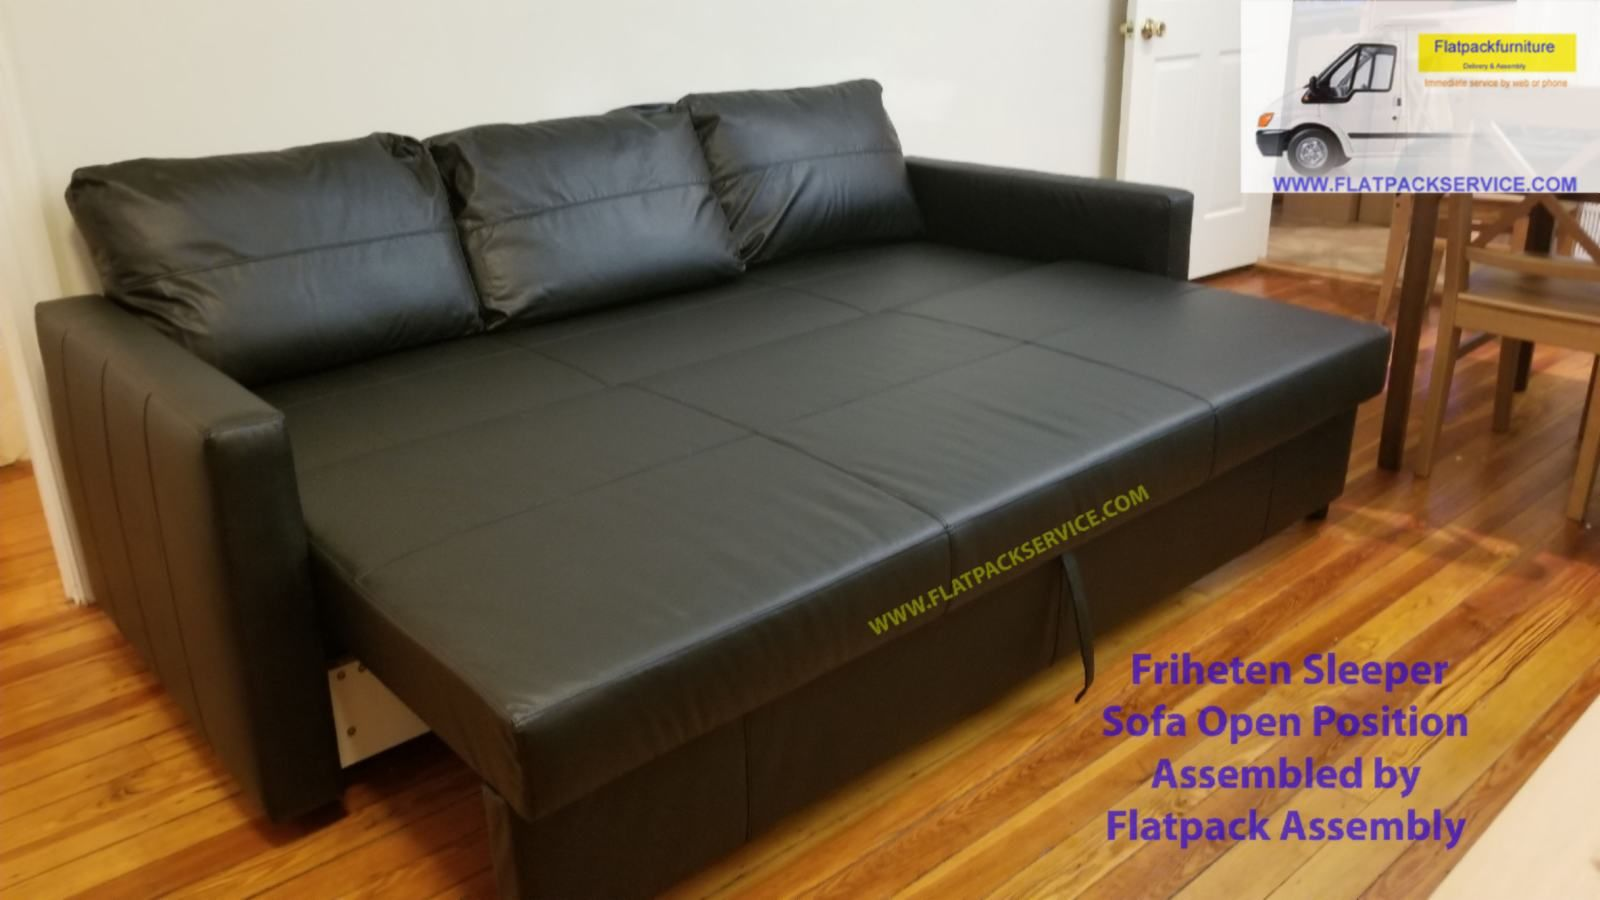 Top 10 Best Furniture Assembly In Washington Dc Last